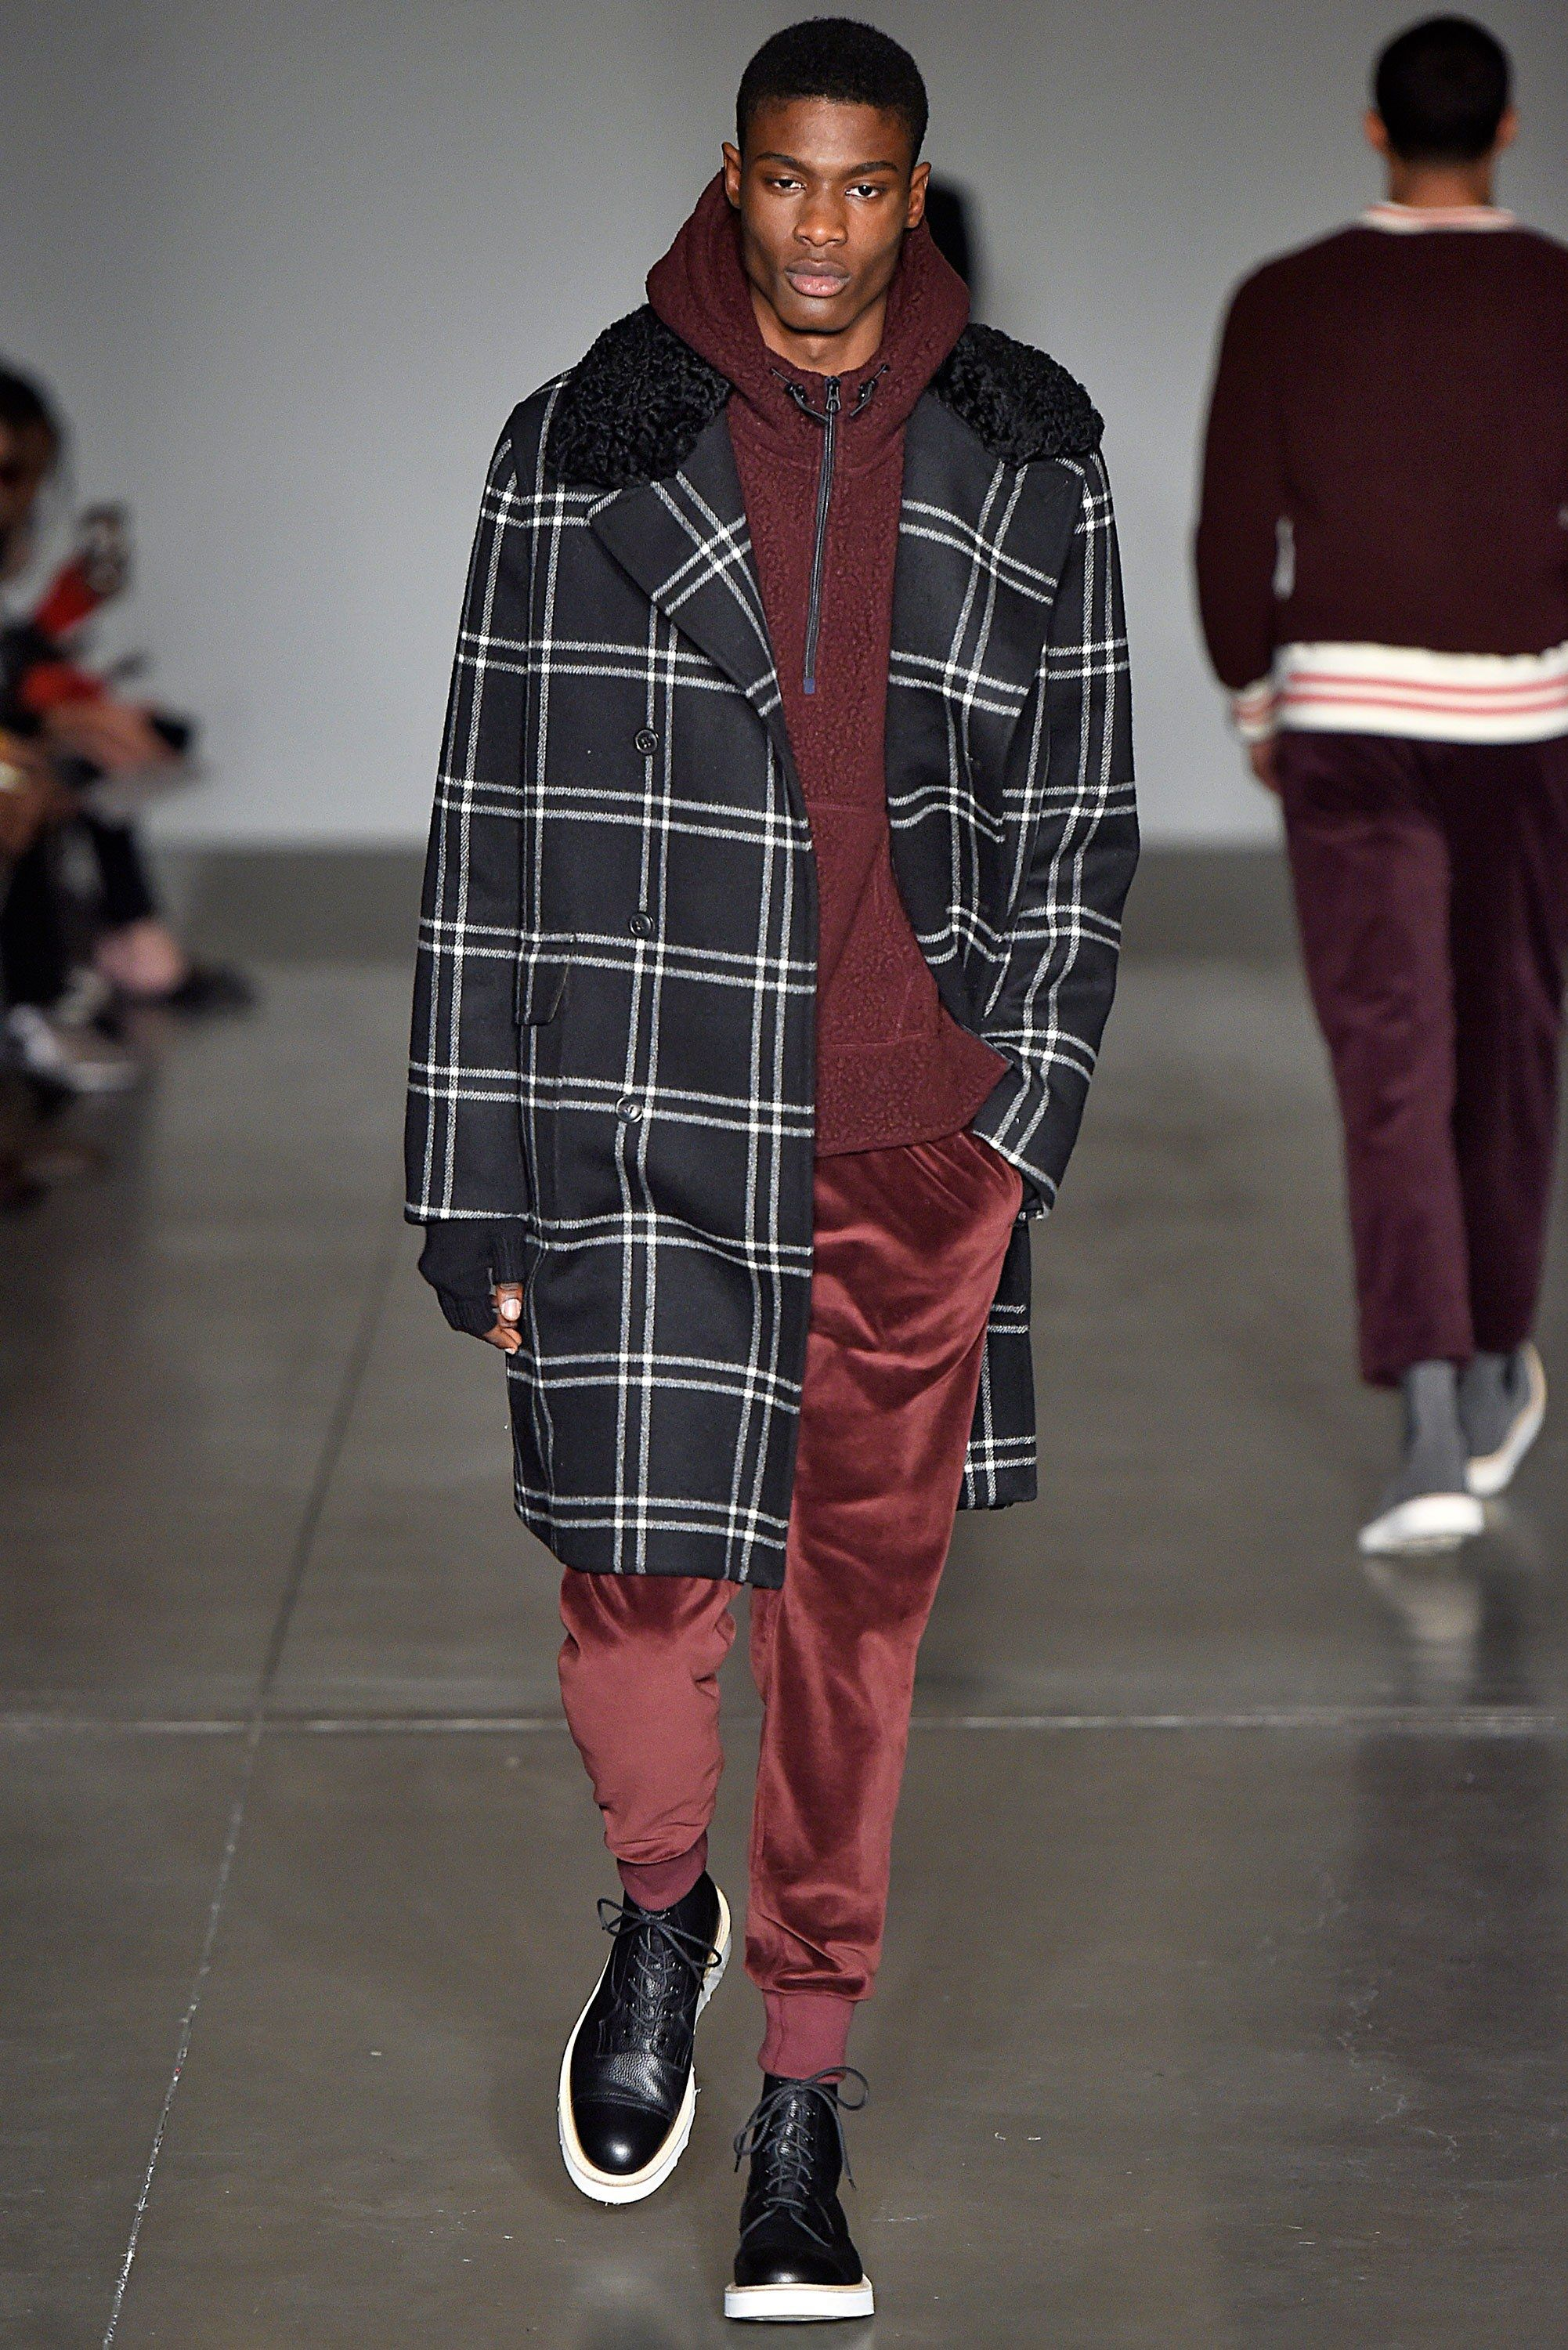 Todd snyder fall menswear fashion show in frunways